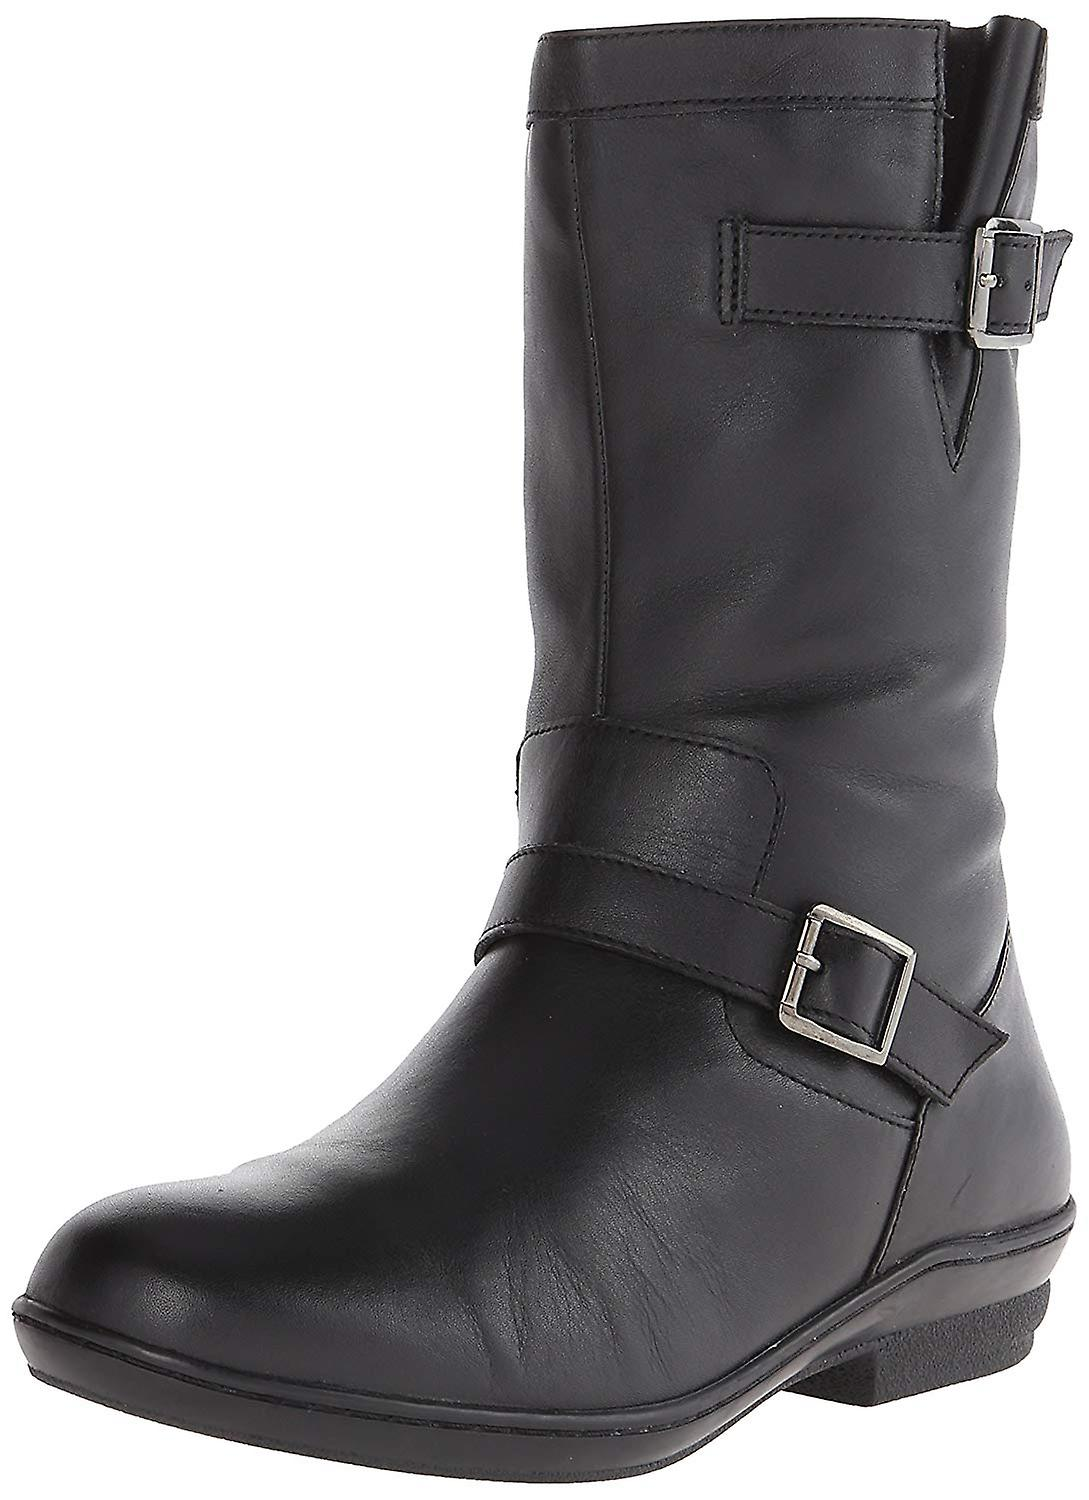 David Tate Womens Dorthy Leather Round Toe Ankle Fashion Boots Tey5m